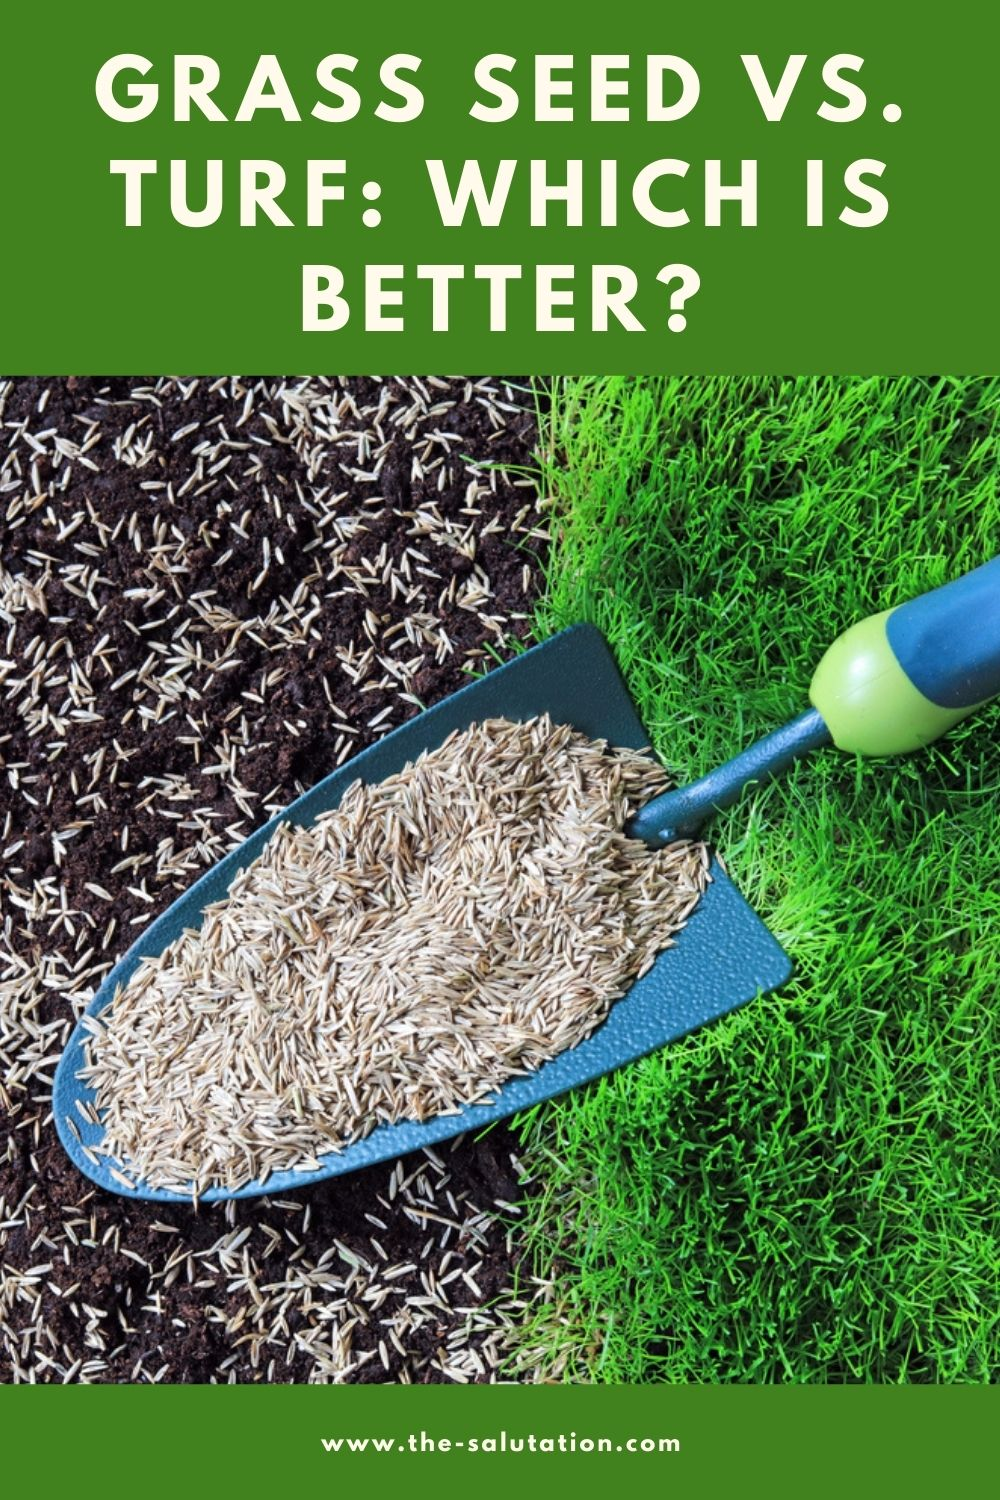 Grass Seed Vs. Turf Which is Better 2